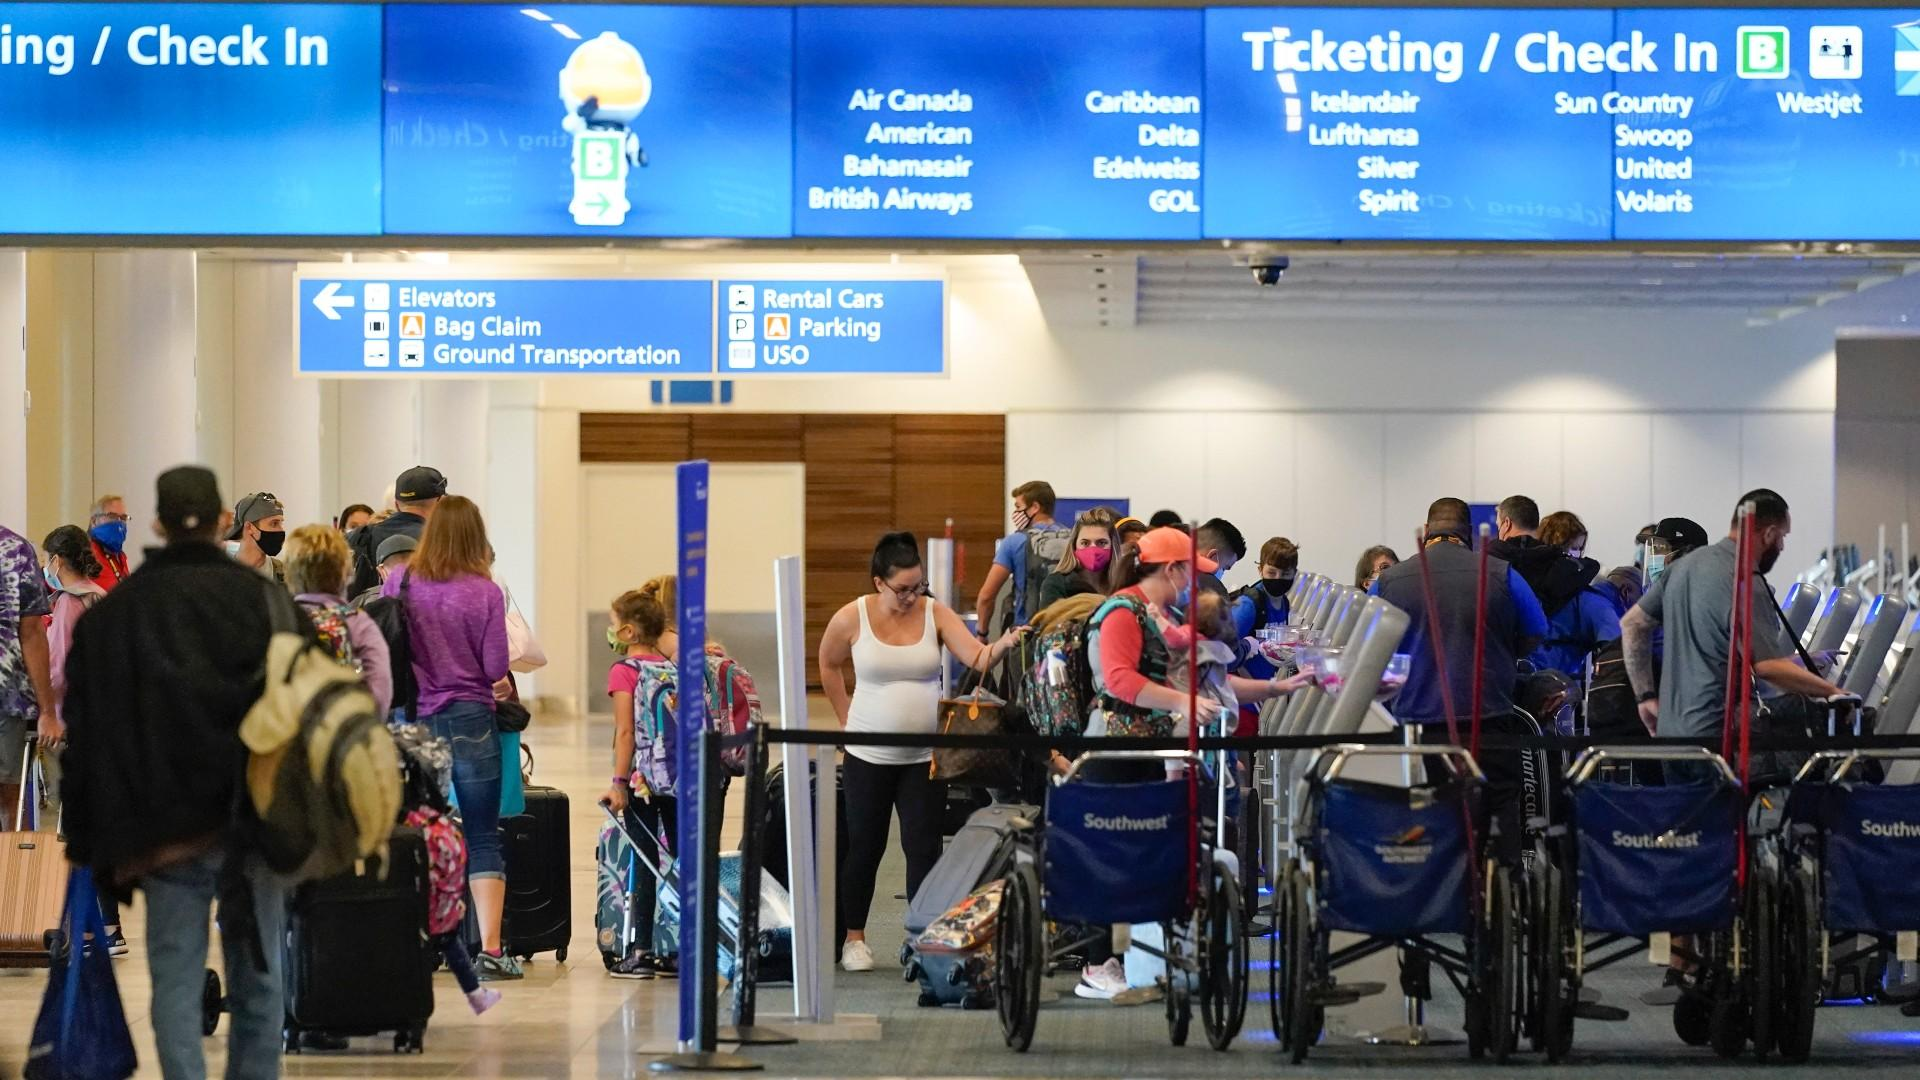 Holiday travelers check in at kiosks near an airline counter at Orlando International Airport Tuesday, Nov. 24, 2020, in Orlando, Fla. (AP Photo / John Raoux)